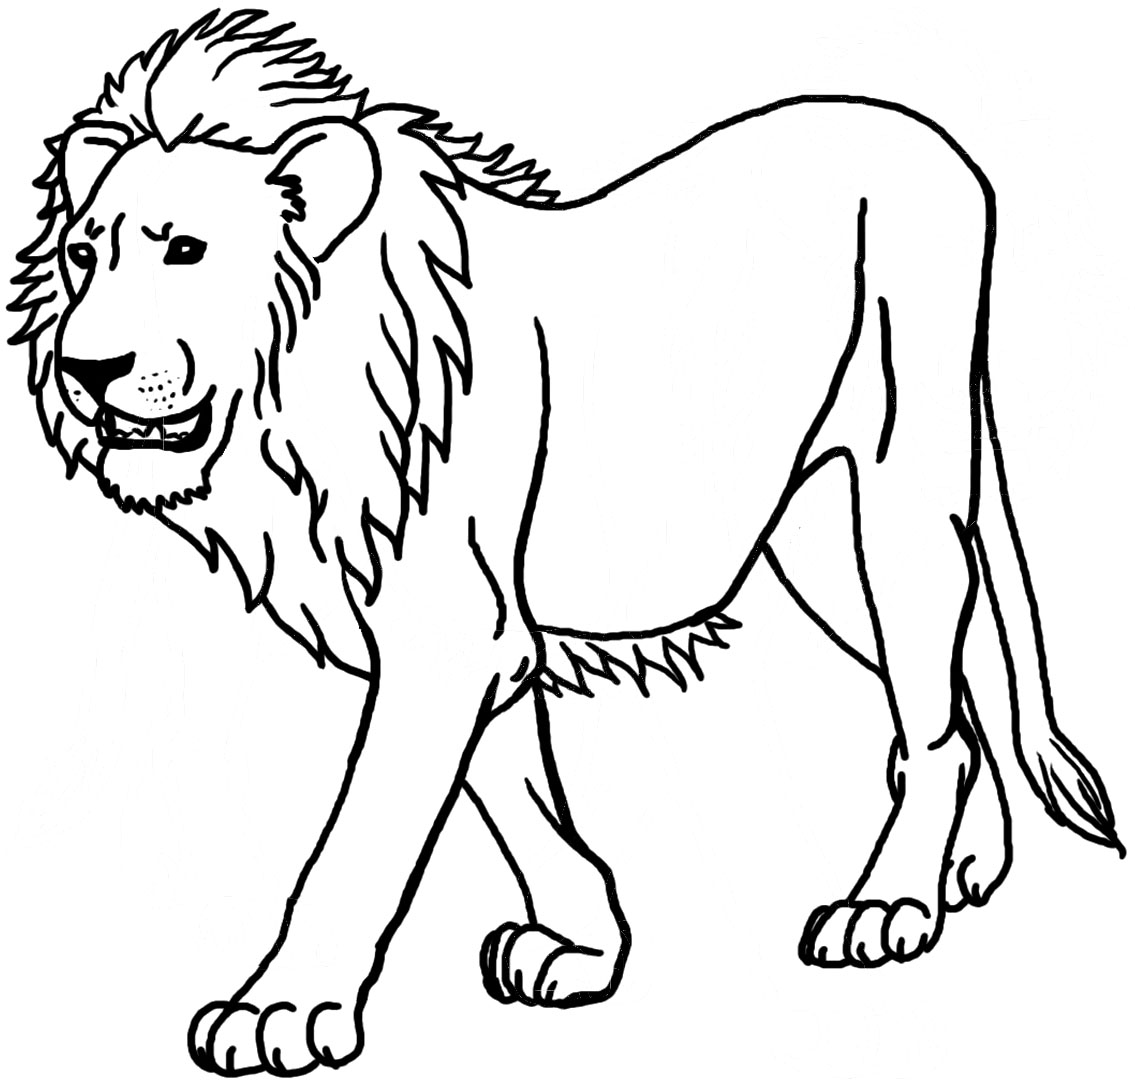 lion coloring image north african lion coloring cswd coloring lion image